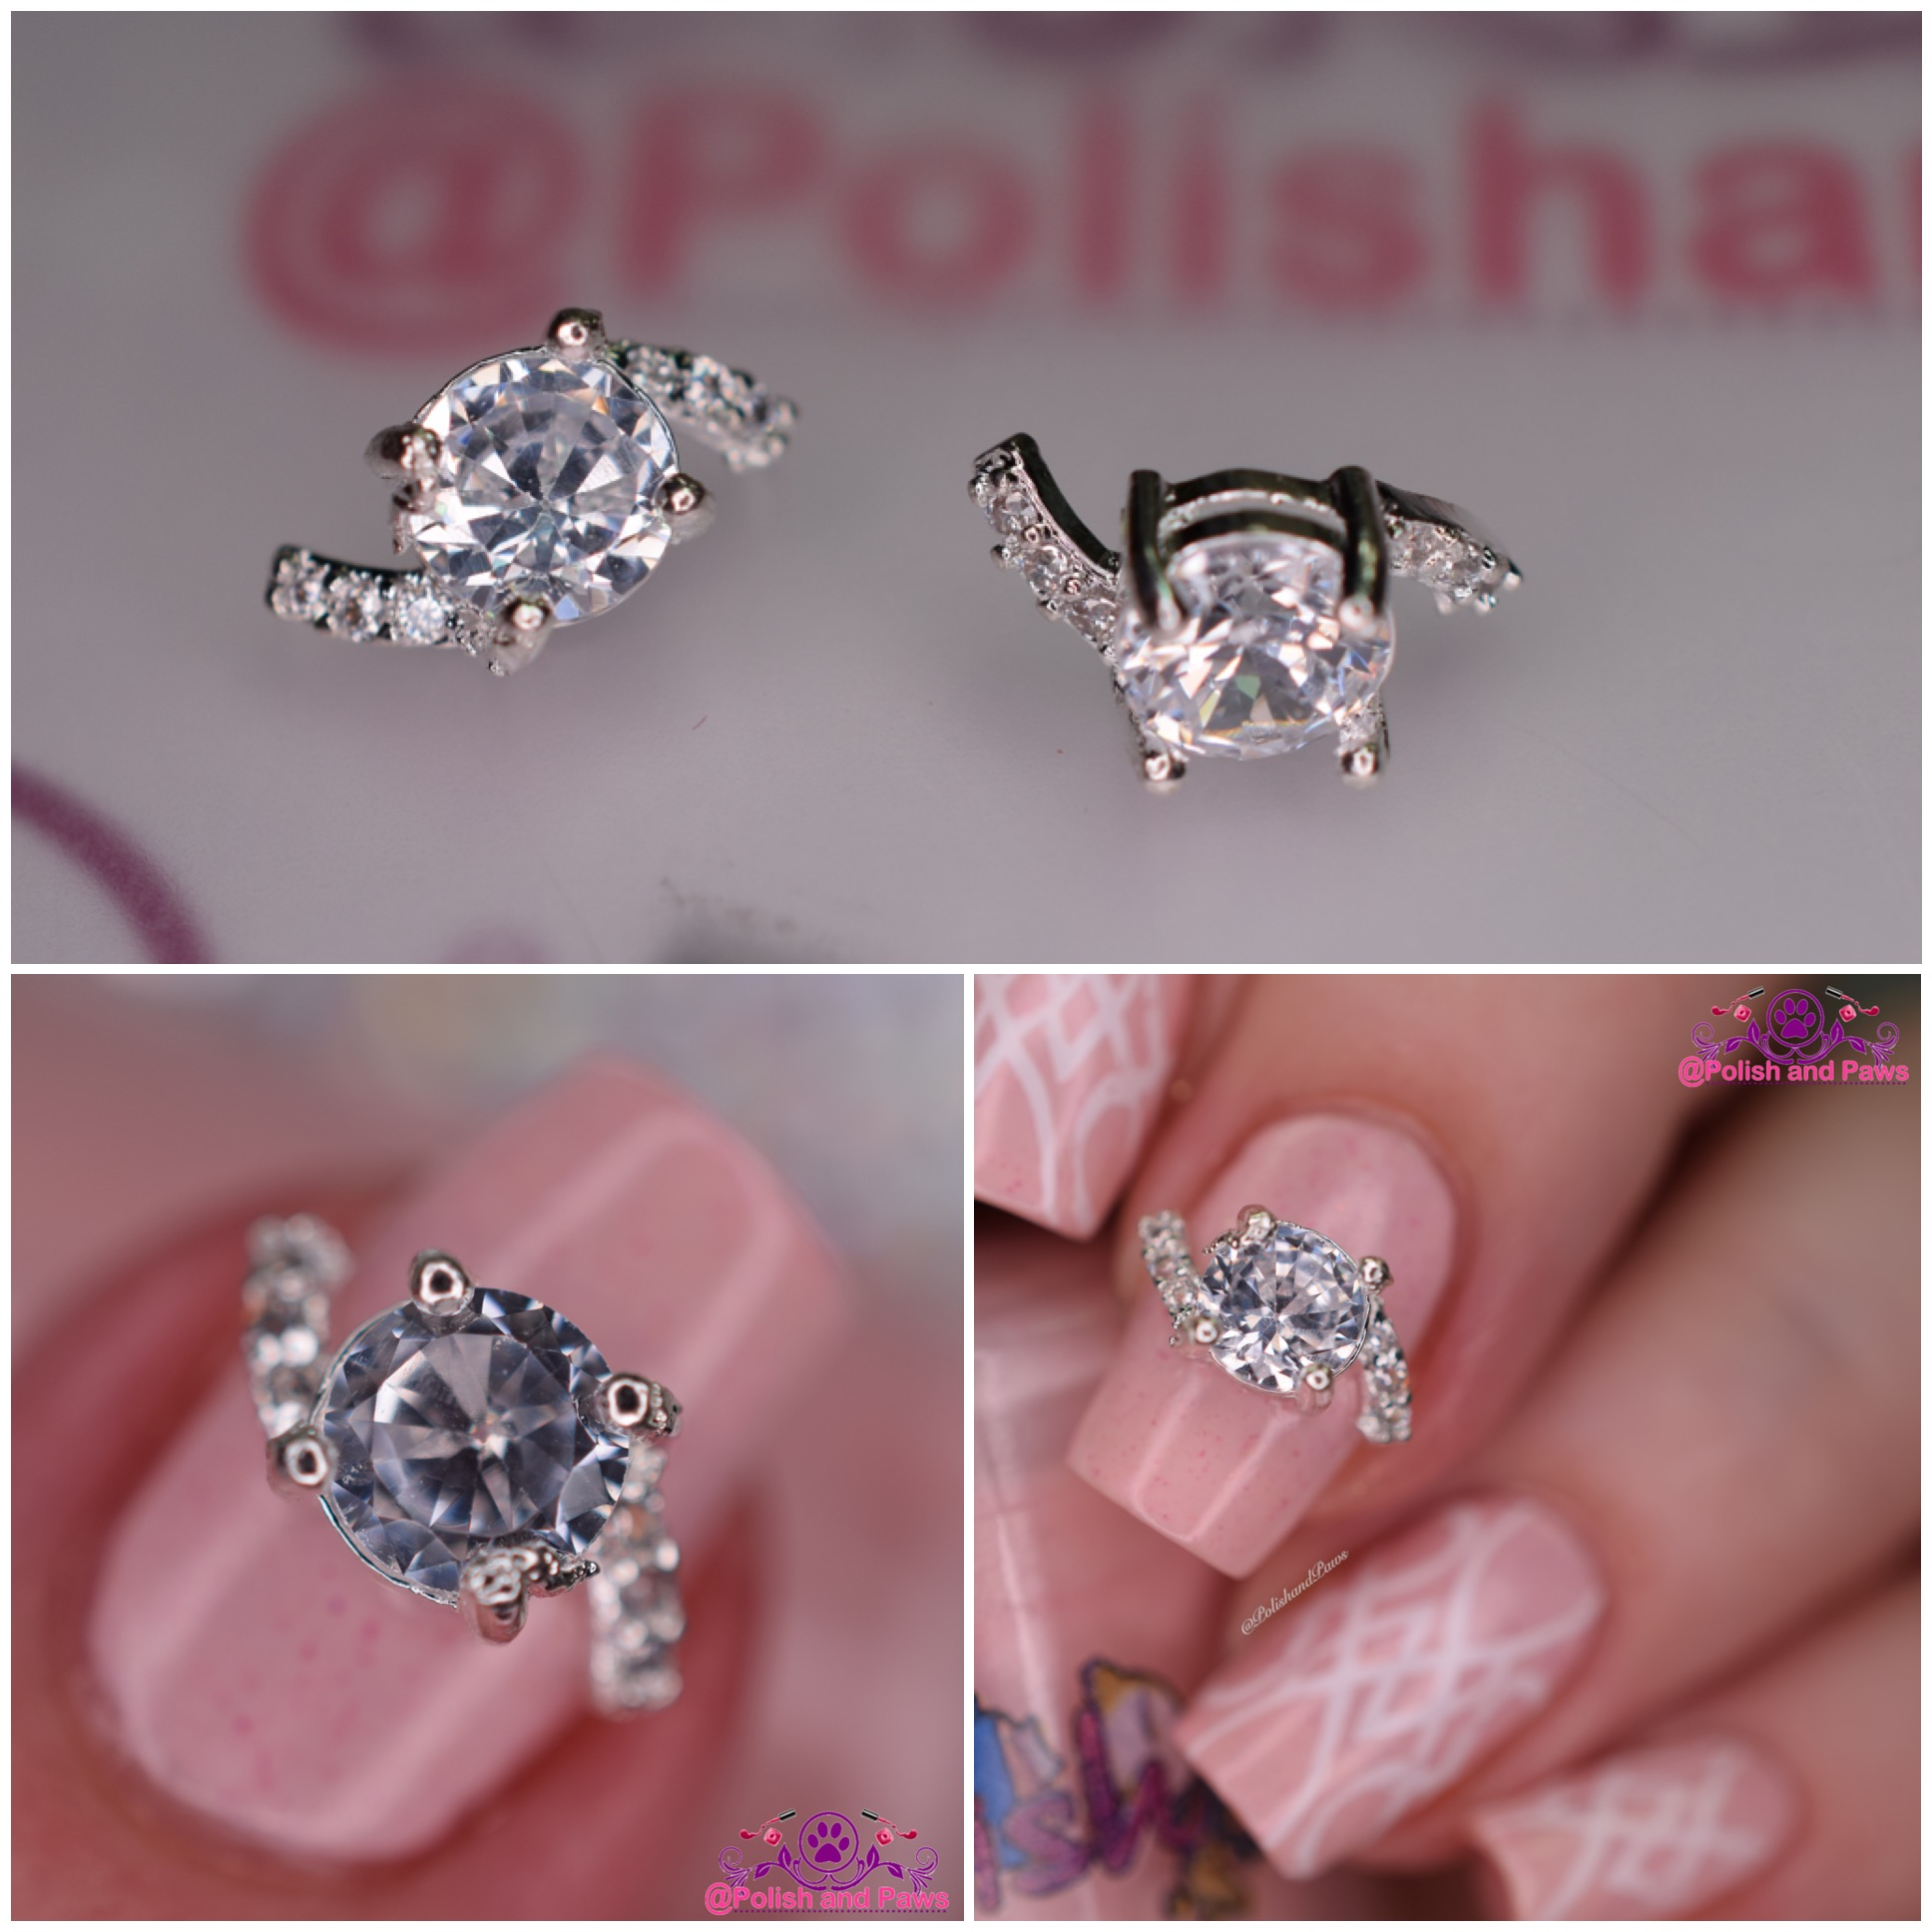 Nail Art ~ Silver Rhinestone Ring Nail Decoration | Polish and Paws